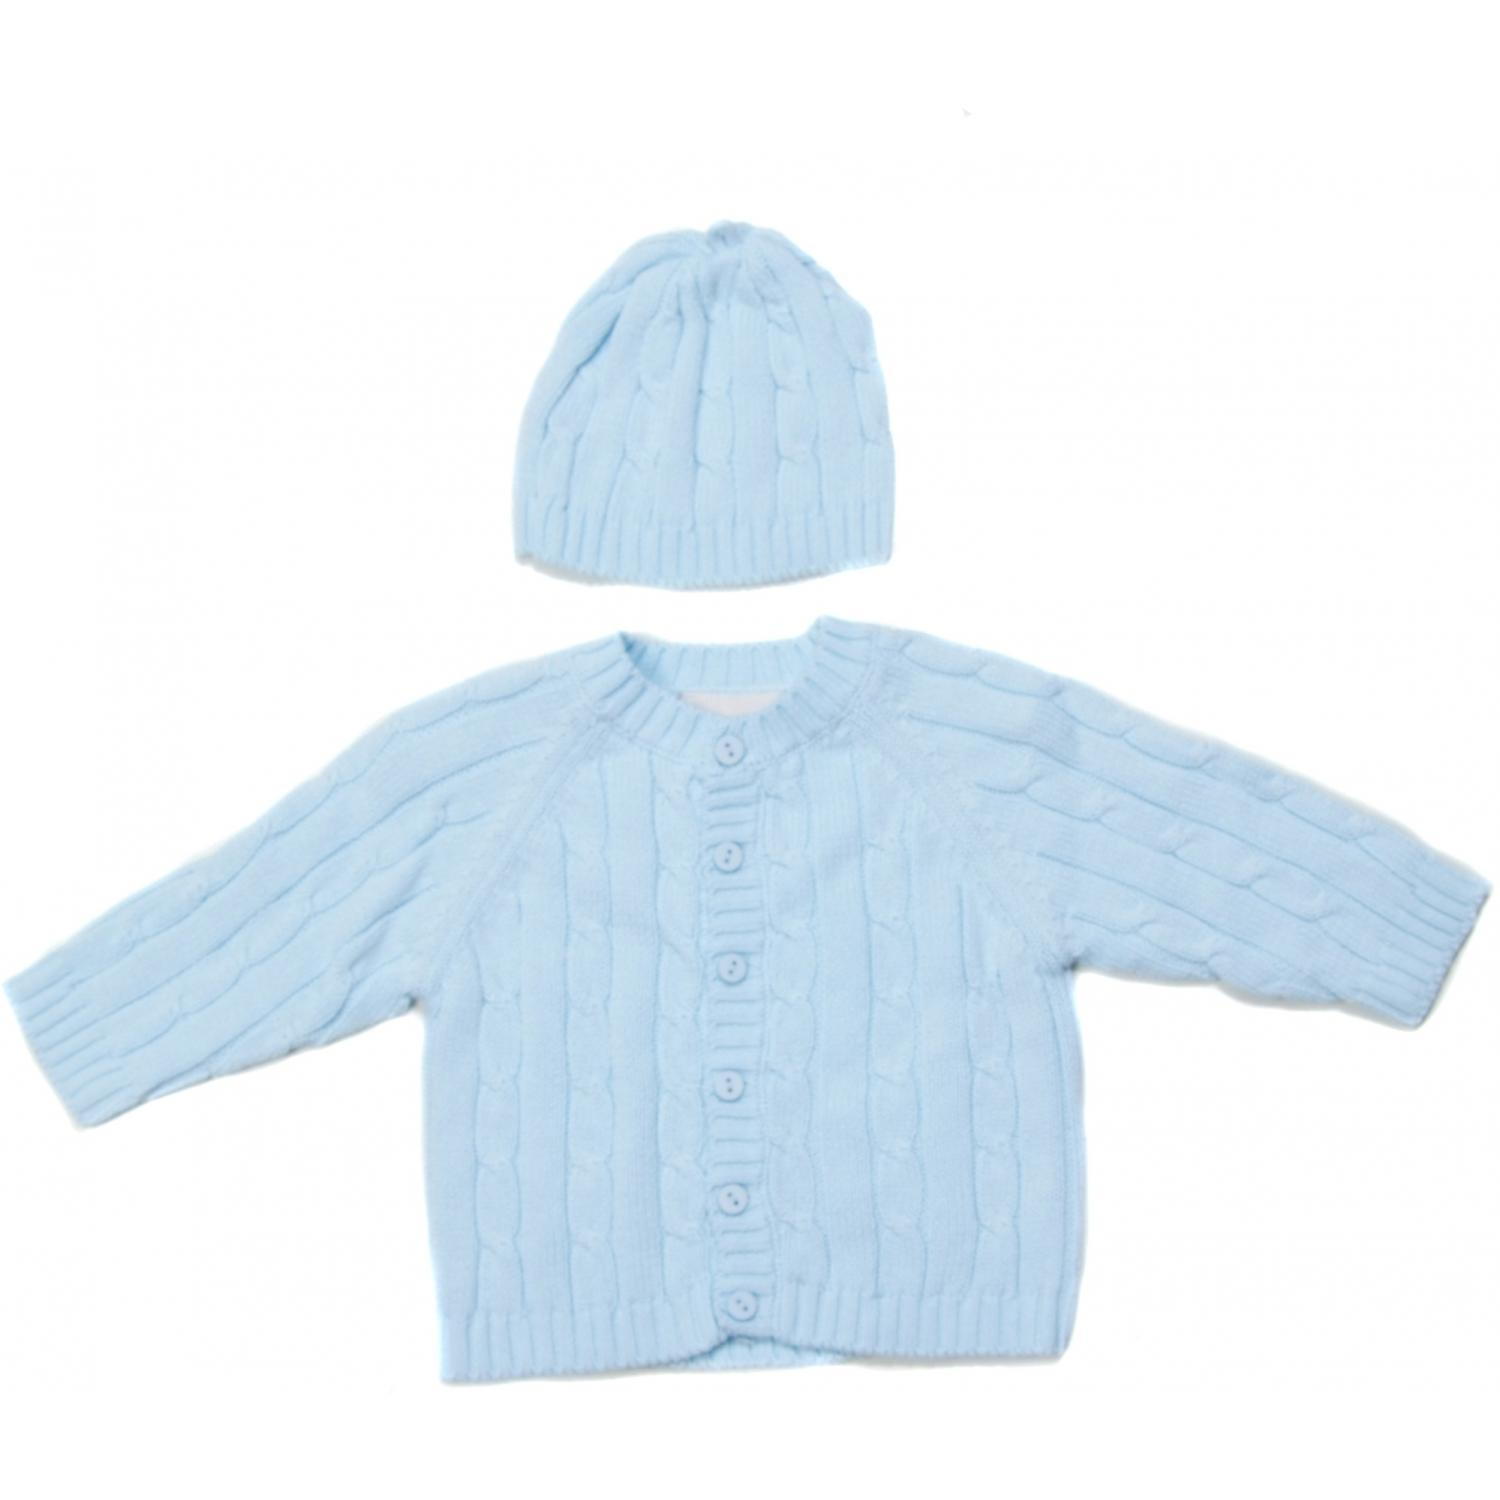 Elegant Baby Cable Knit Sweater Box Set 12 Months - Blue